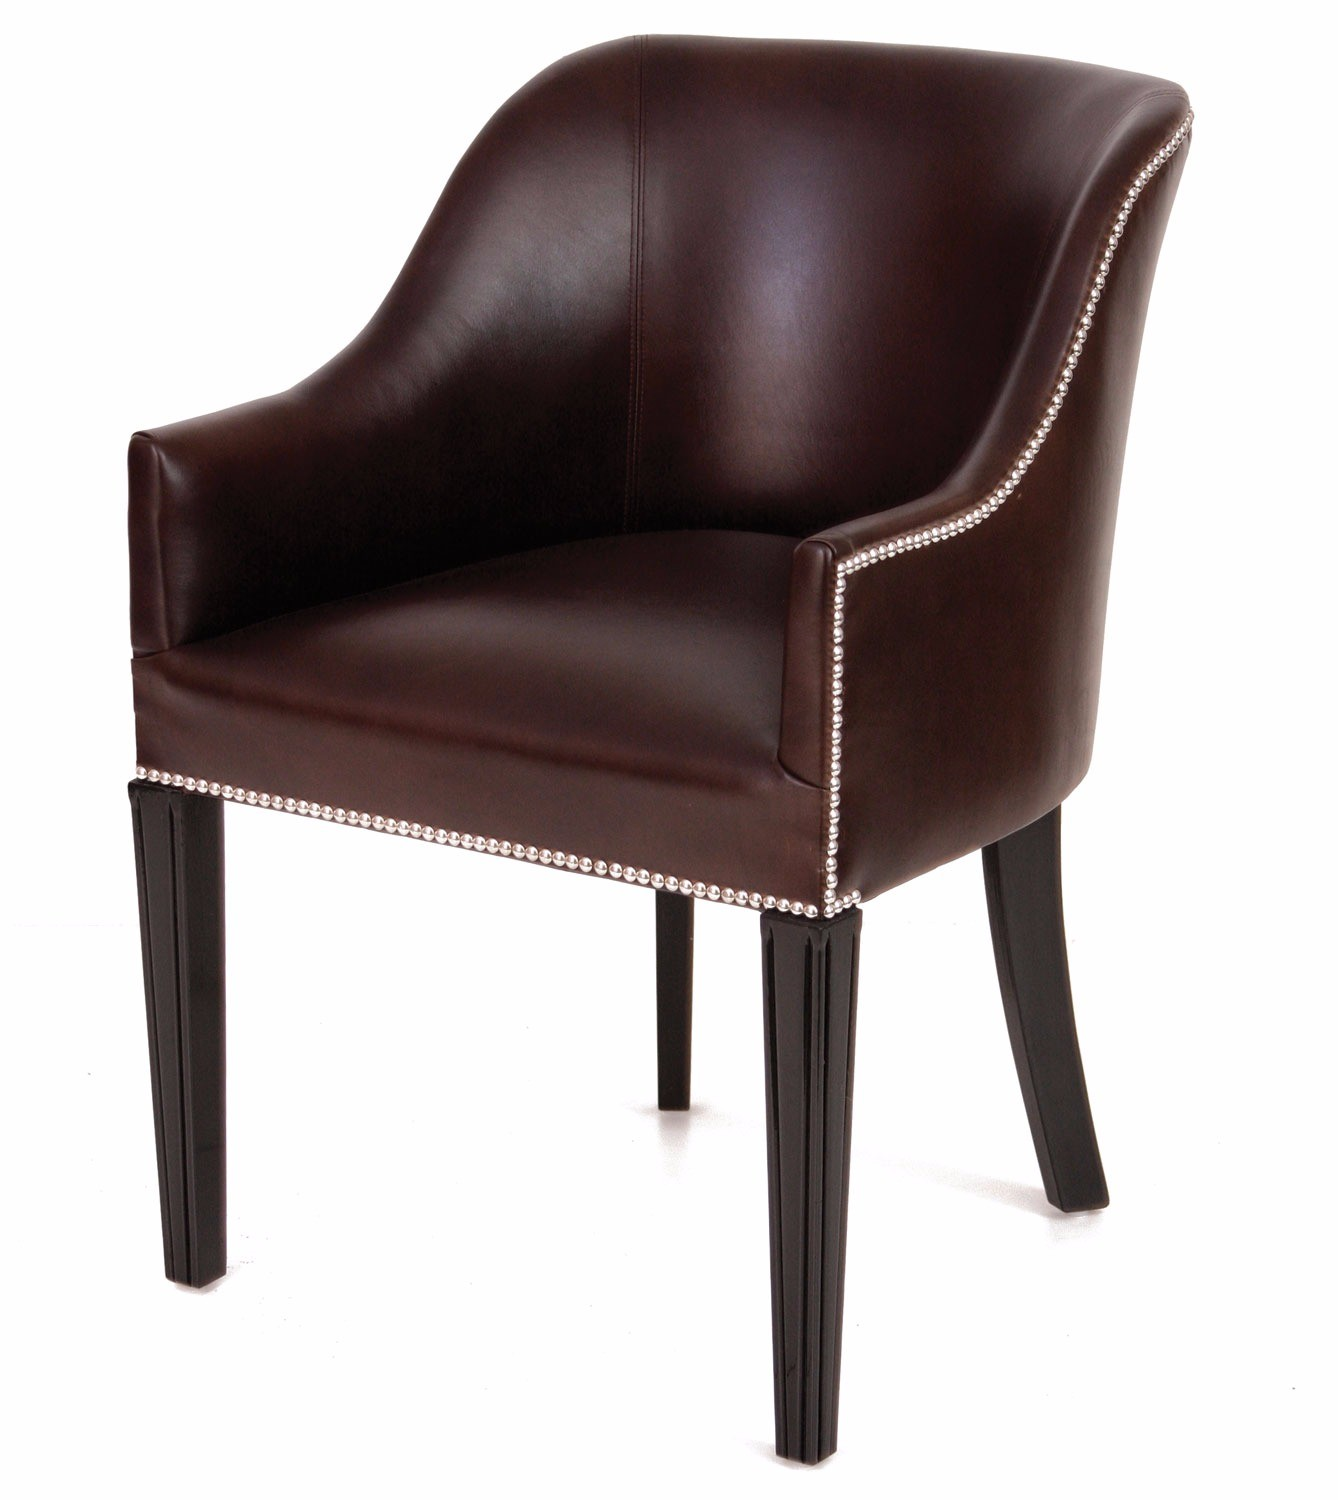 Hinton Tub Chair In Dark Chocolate Leather